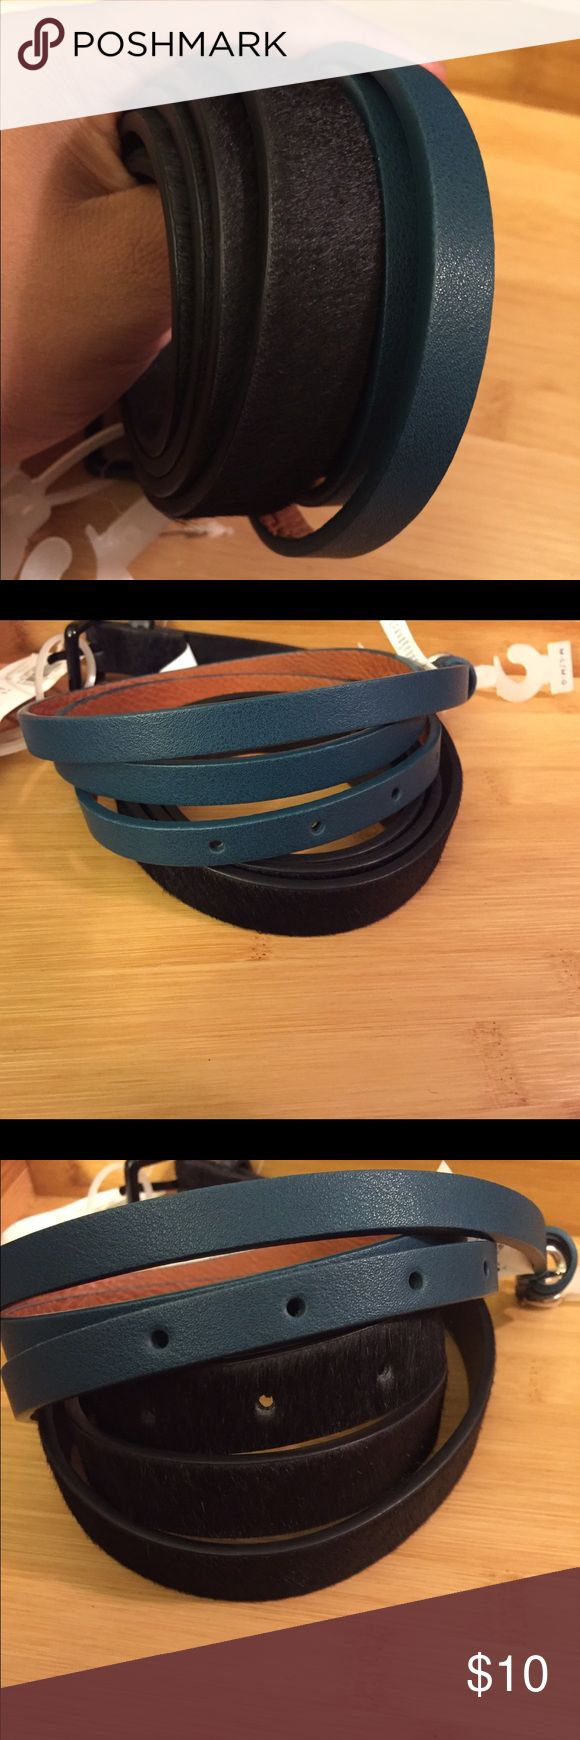 2 Old Navy skinny belts - New with tags Chic skinny belts in M-L.  One in dark green and one in black. Black belt is calf hair and faux leather. Old Navy Accessories Belts